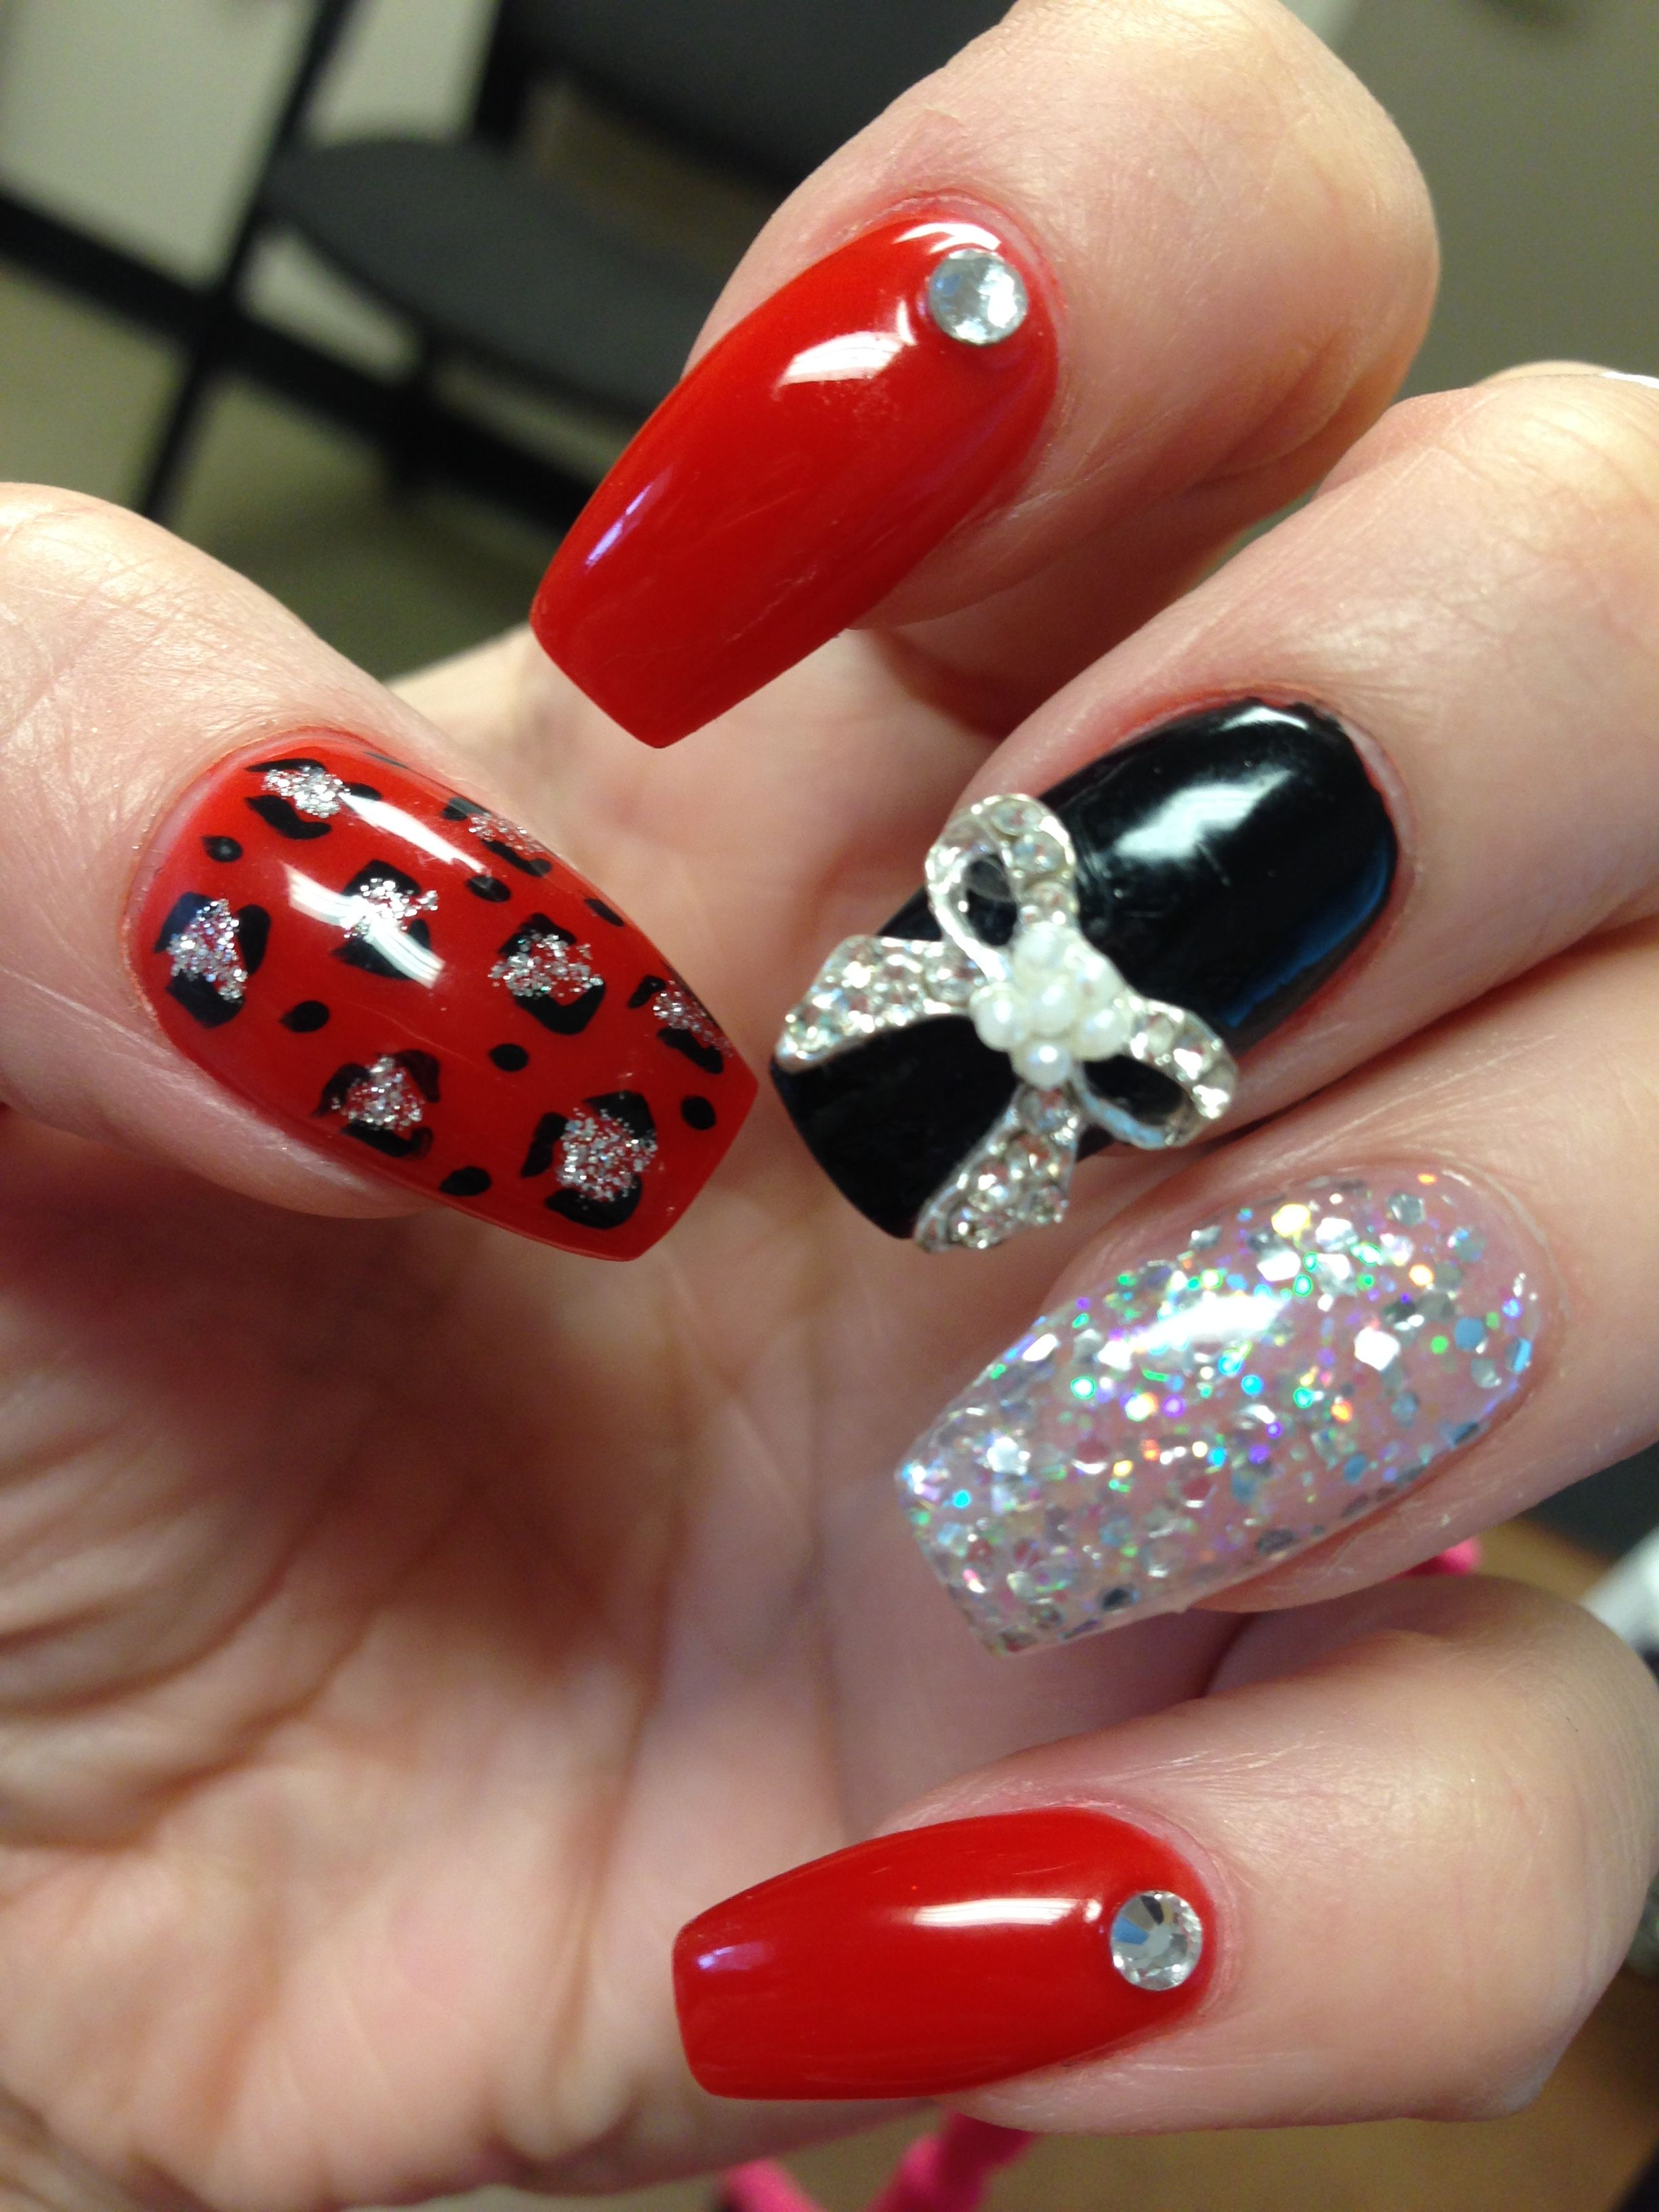 Coffin nails red black silver glitter bling cheetah bow coffin nails red black silver glitter bling cheetah bow prinsesfo Image collections